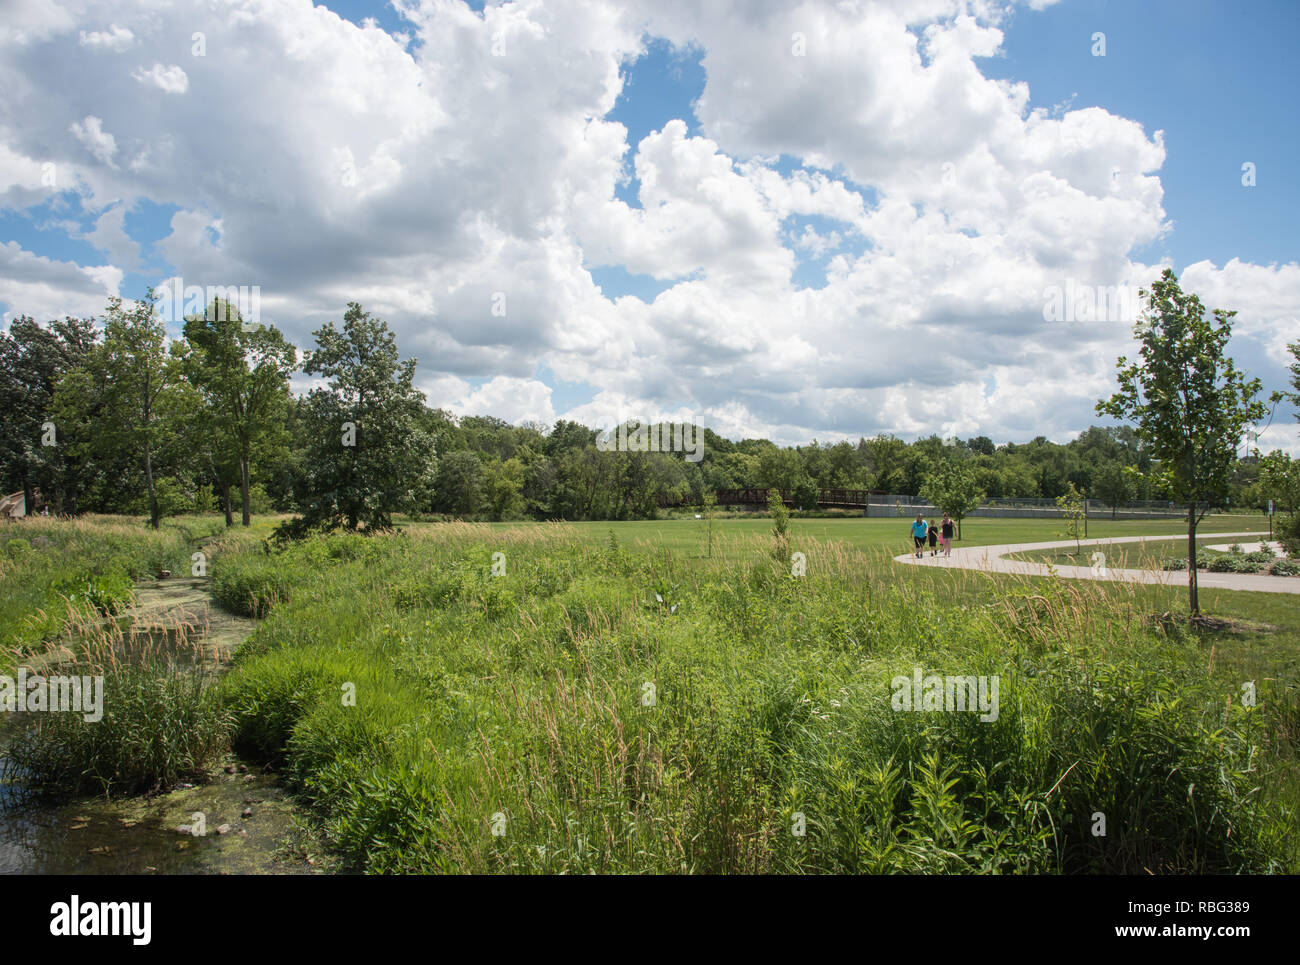 Naperville, Illinois, United States-June 27,2017: People walking the footpath at Knoch Knolls nature reserve in Naperville, Illinois - Stock Image